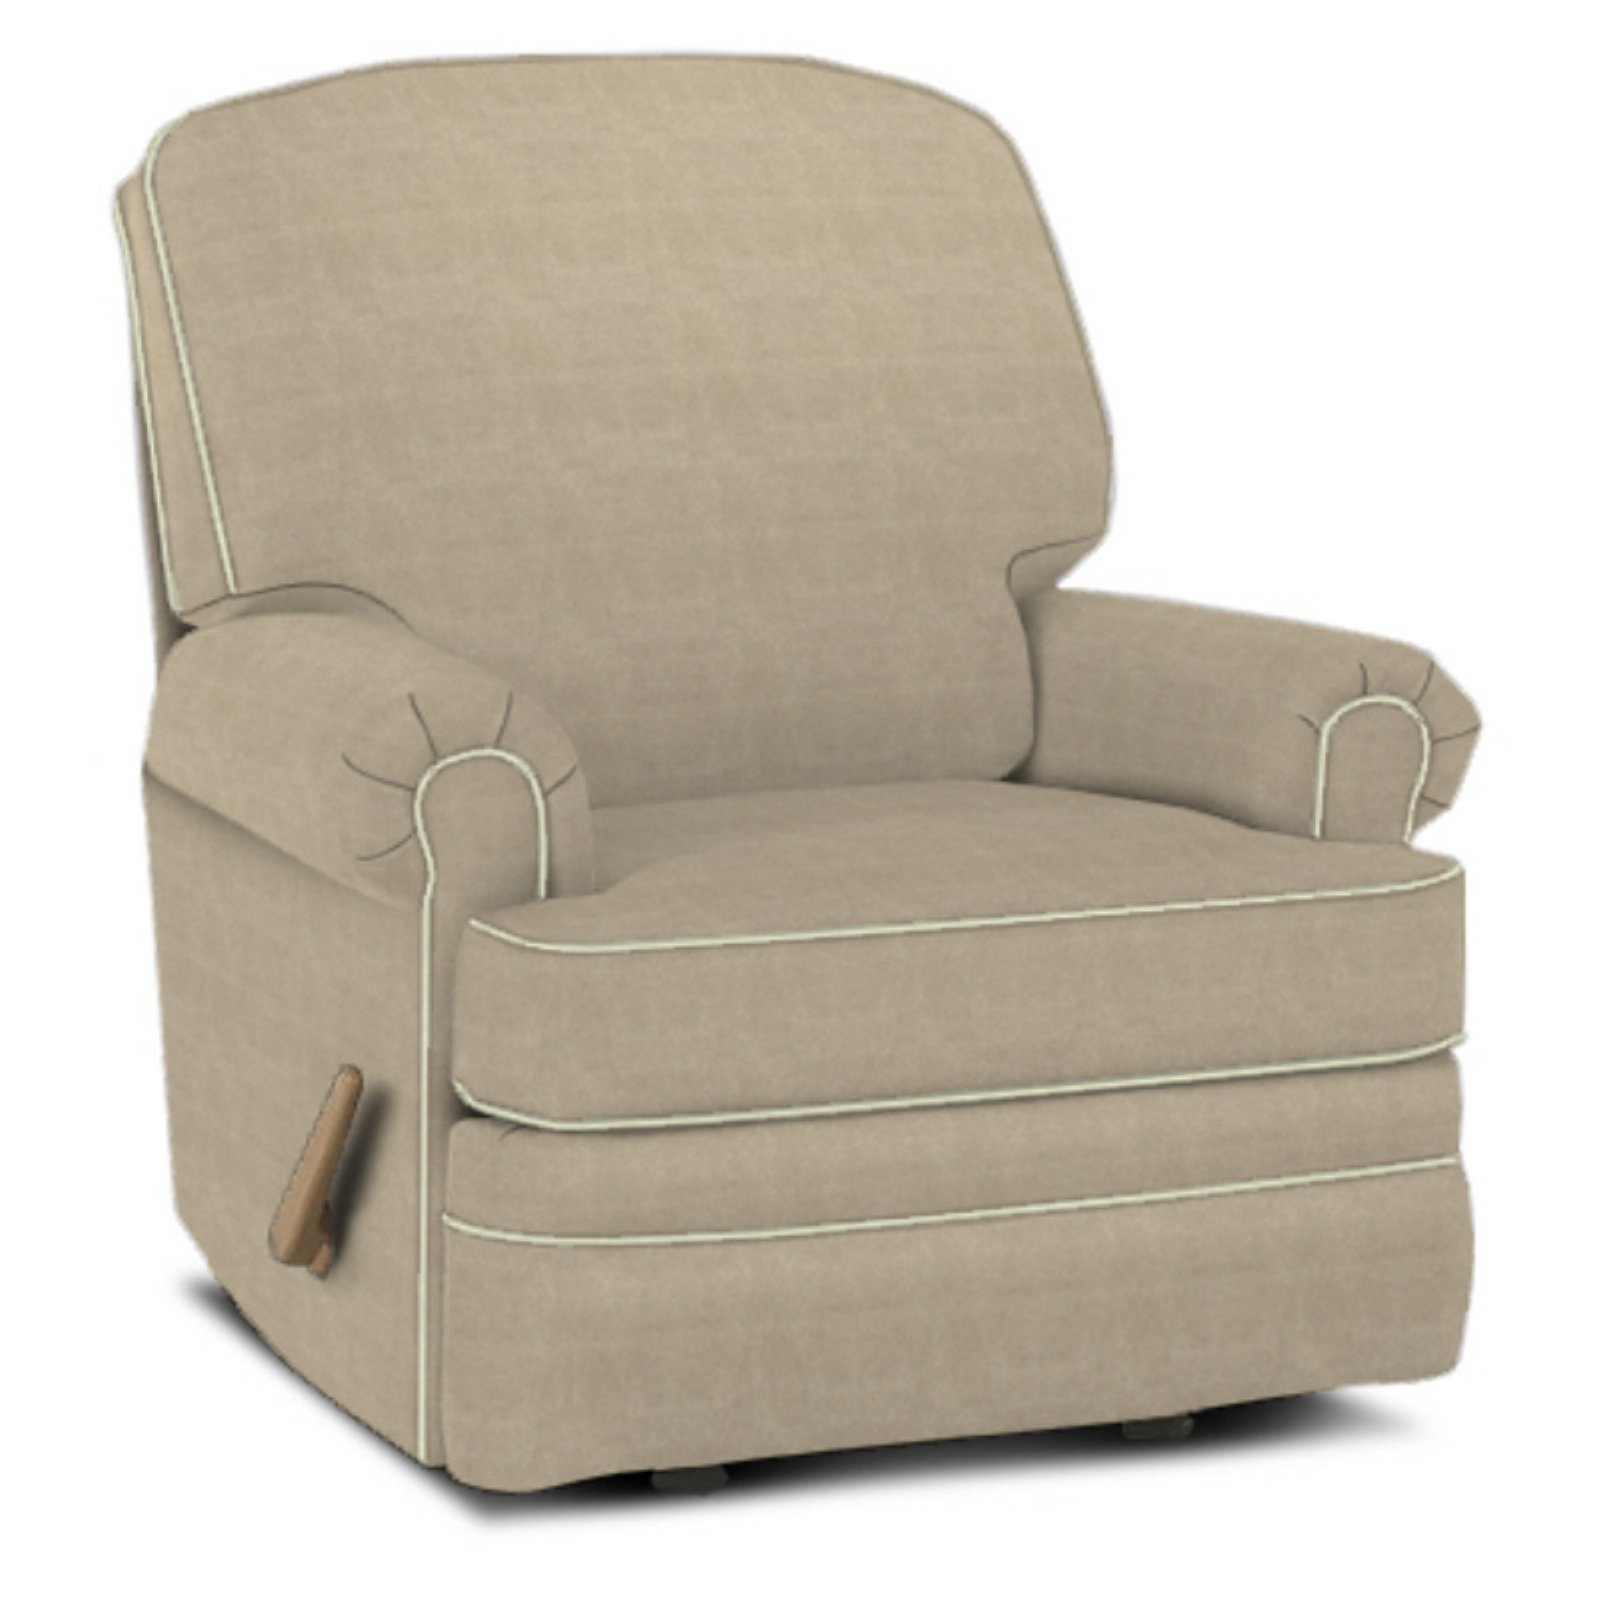 Nursery Classics by Klaussner Stanford Swivel Gliding Recliner